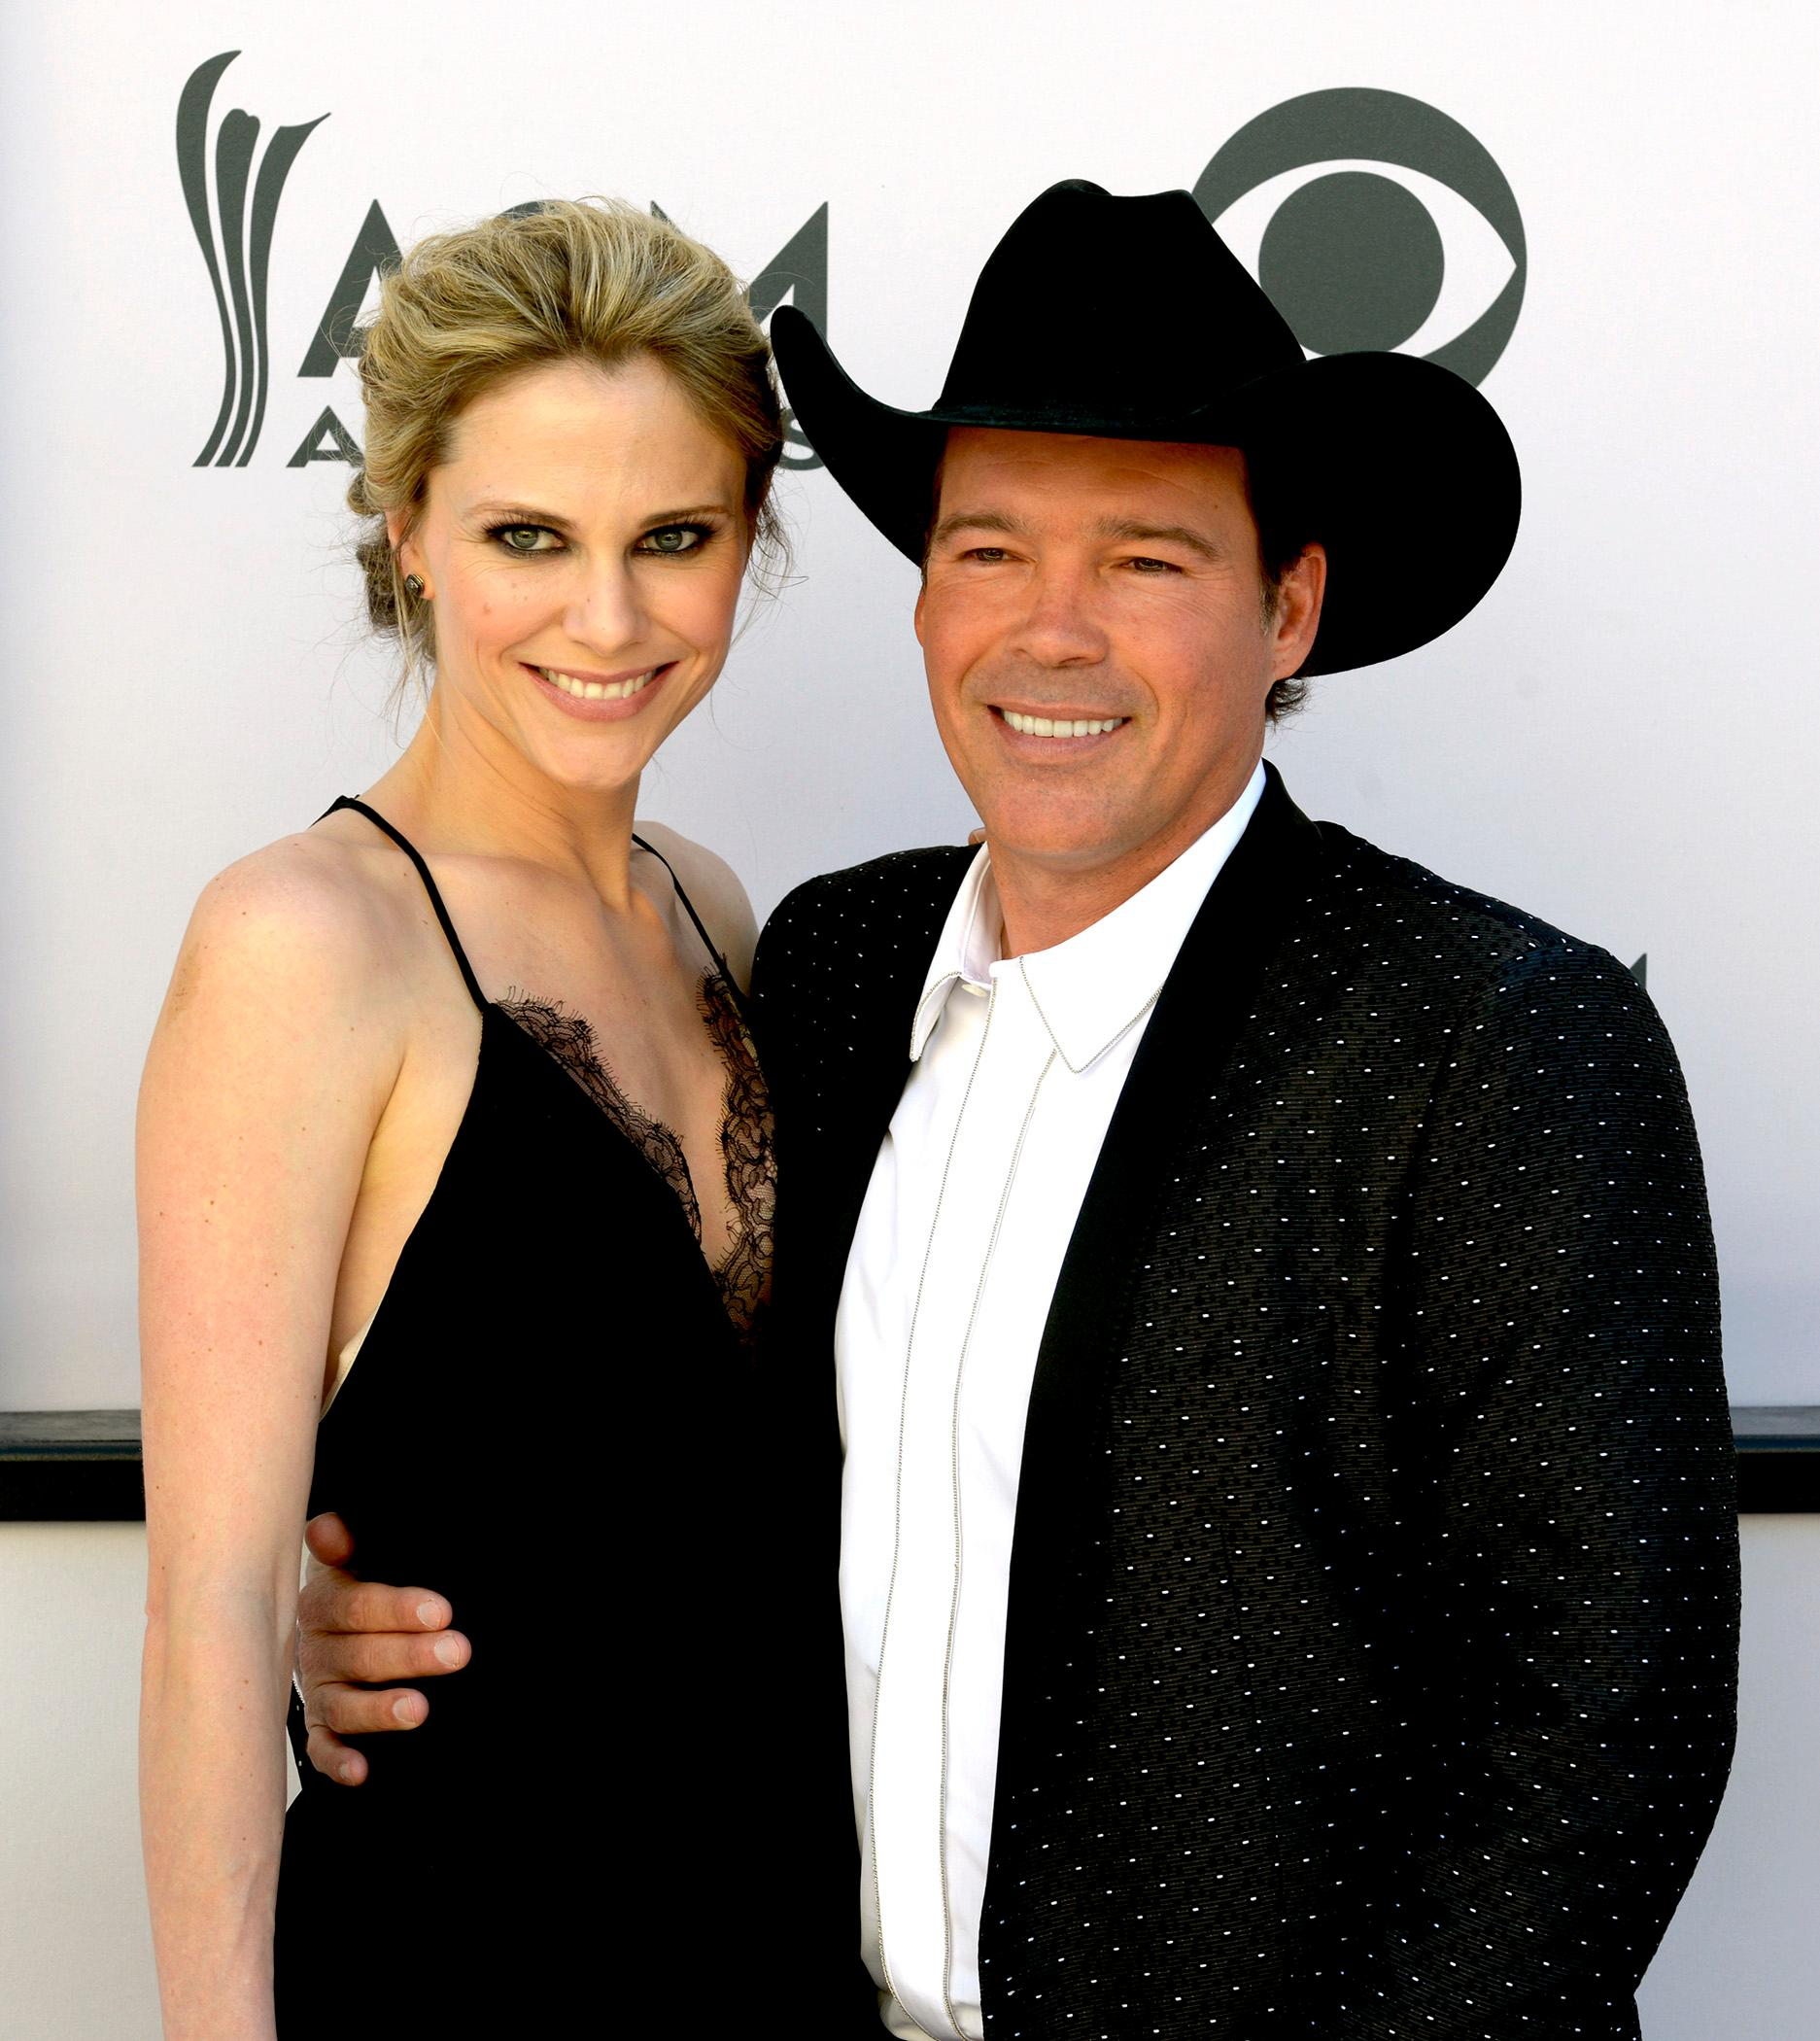 Clay Walker and rodeo queen wife Lori Jane Lampson walk the Academy of Country Music Awards red carpet at T-Mobile Arena. Sunday, April 2, 2017. (Glenn Pinkerton/ Las Vegas News Bureau)